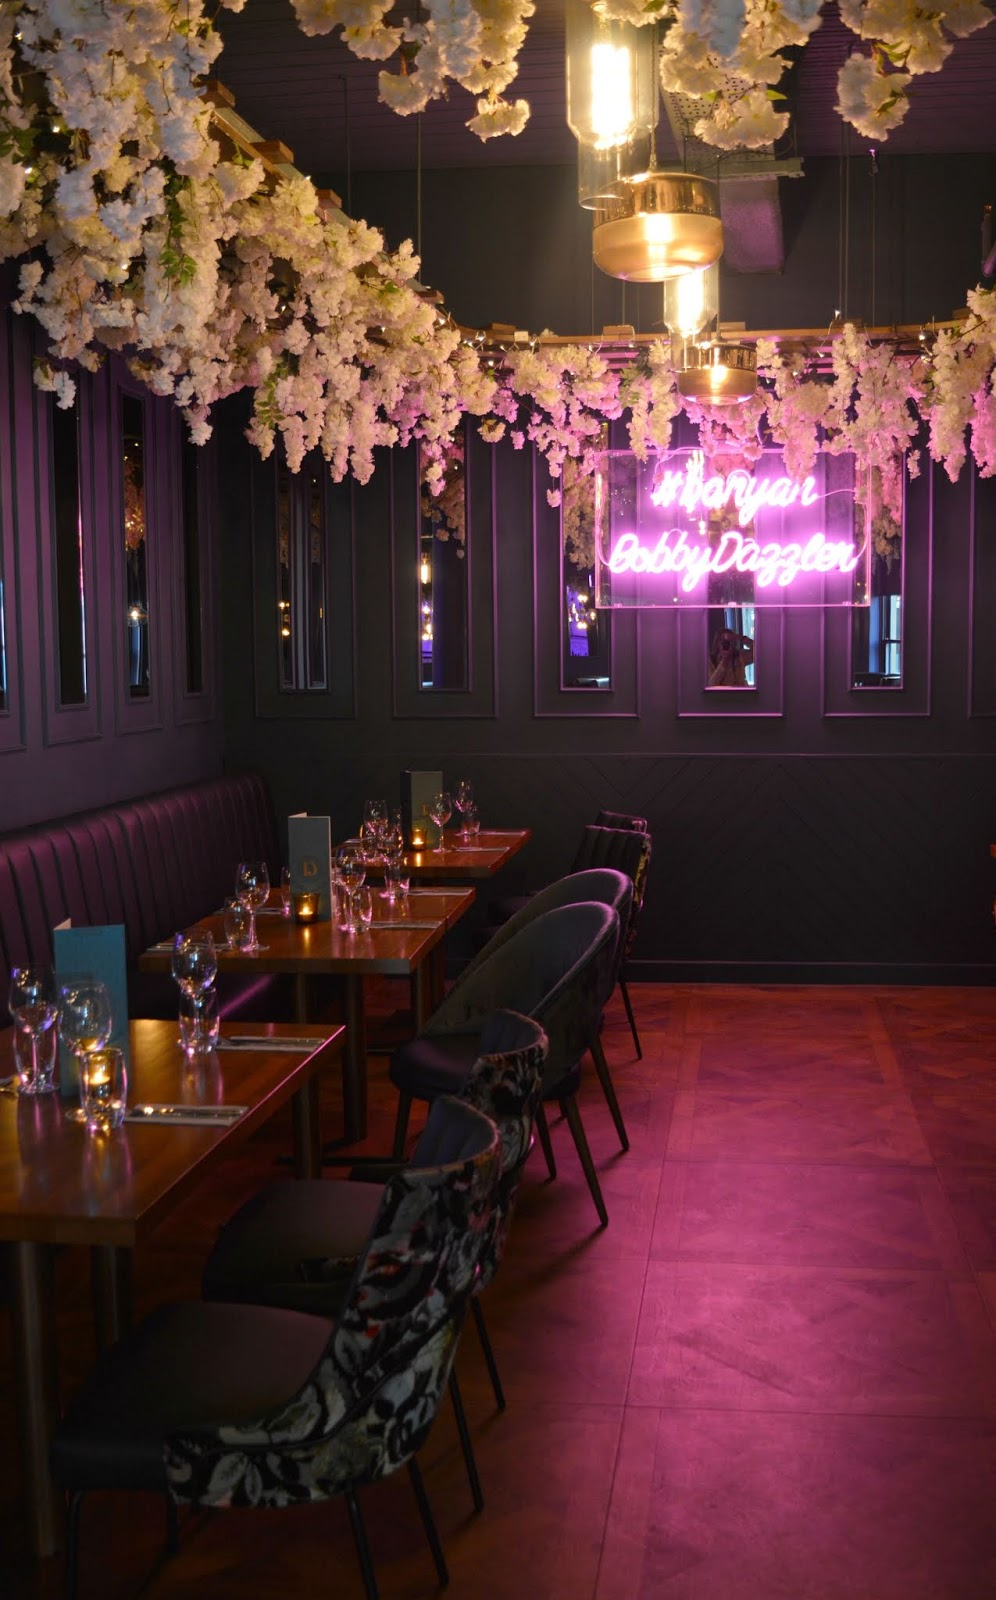 Banyan - Instagrammable New Bar and Restaurant in Newcastle